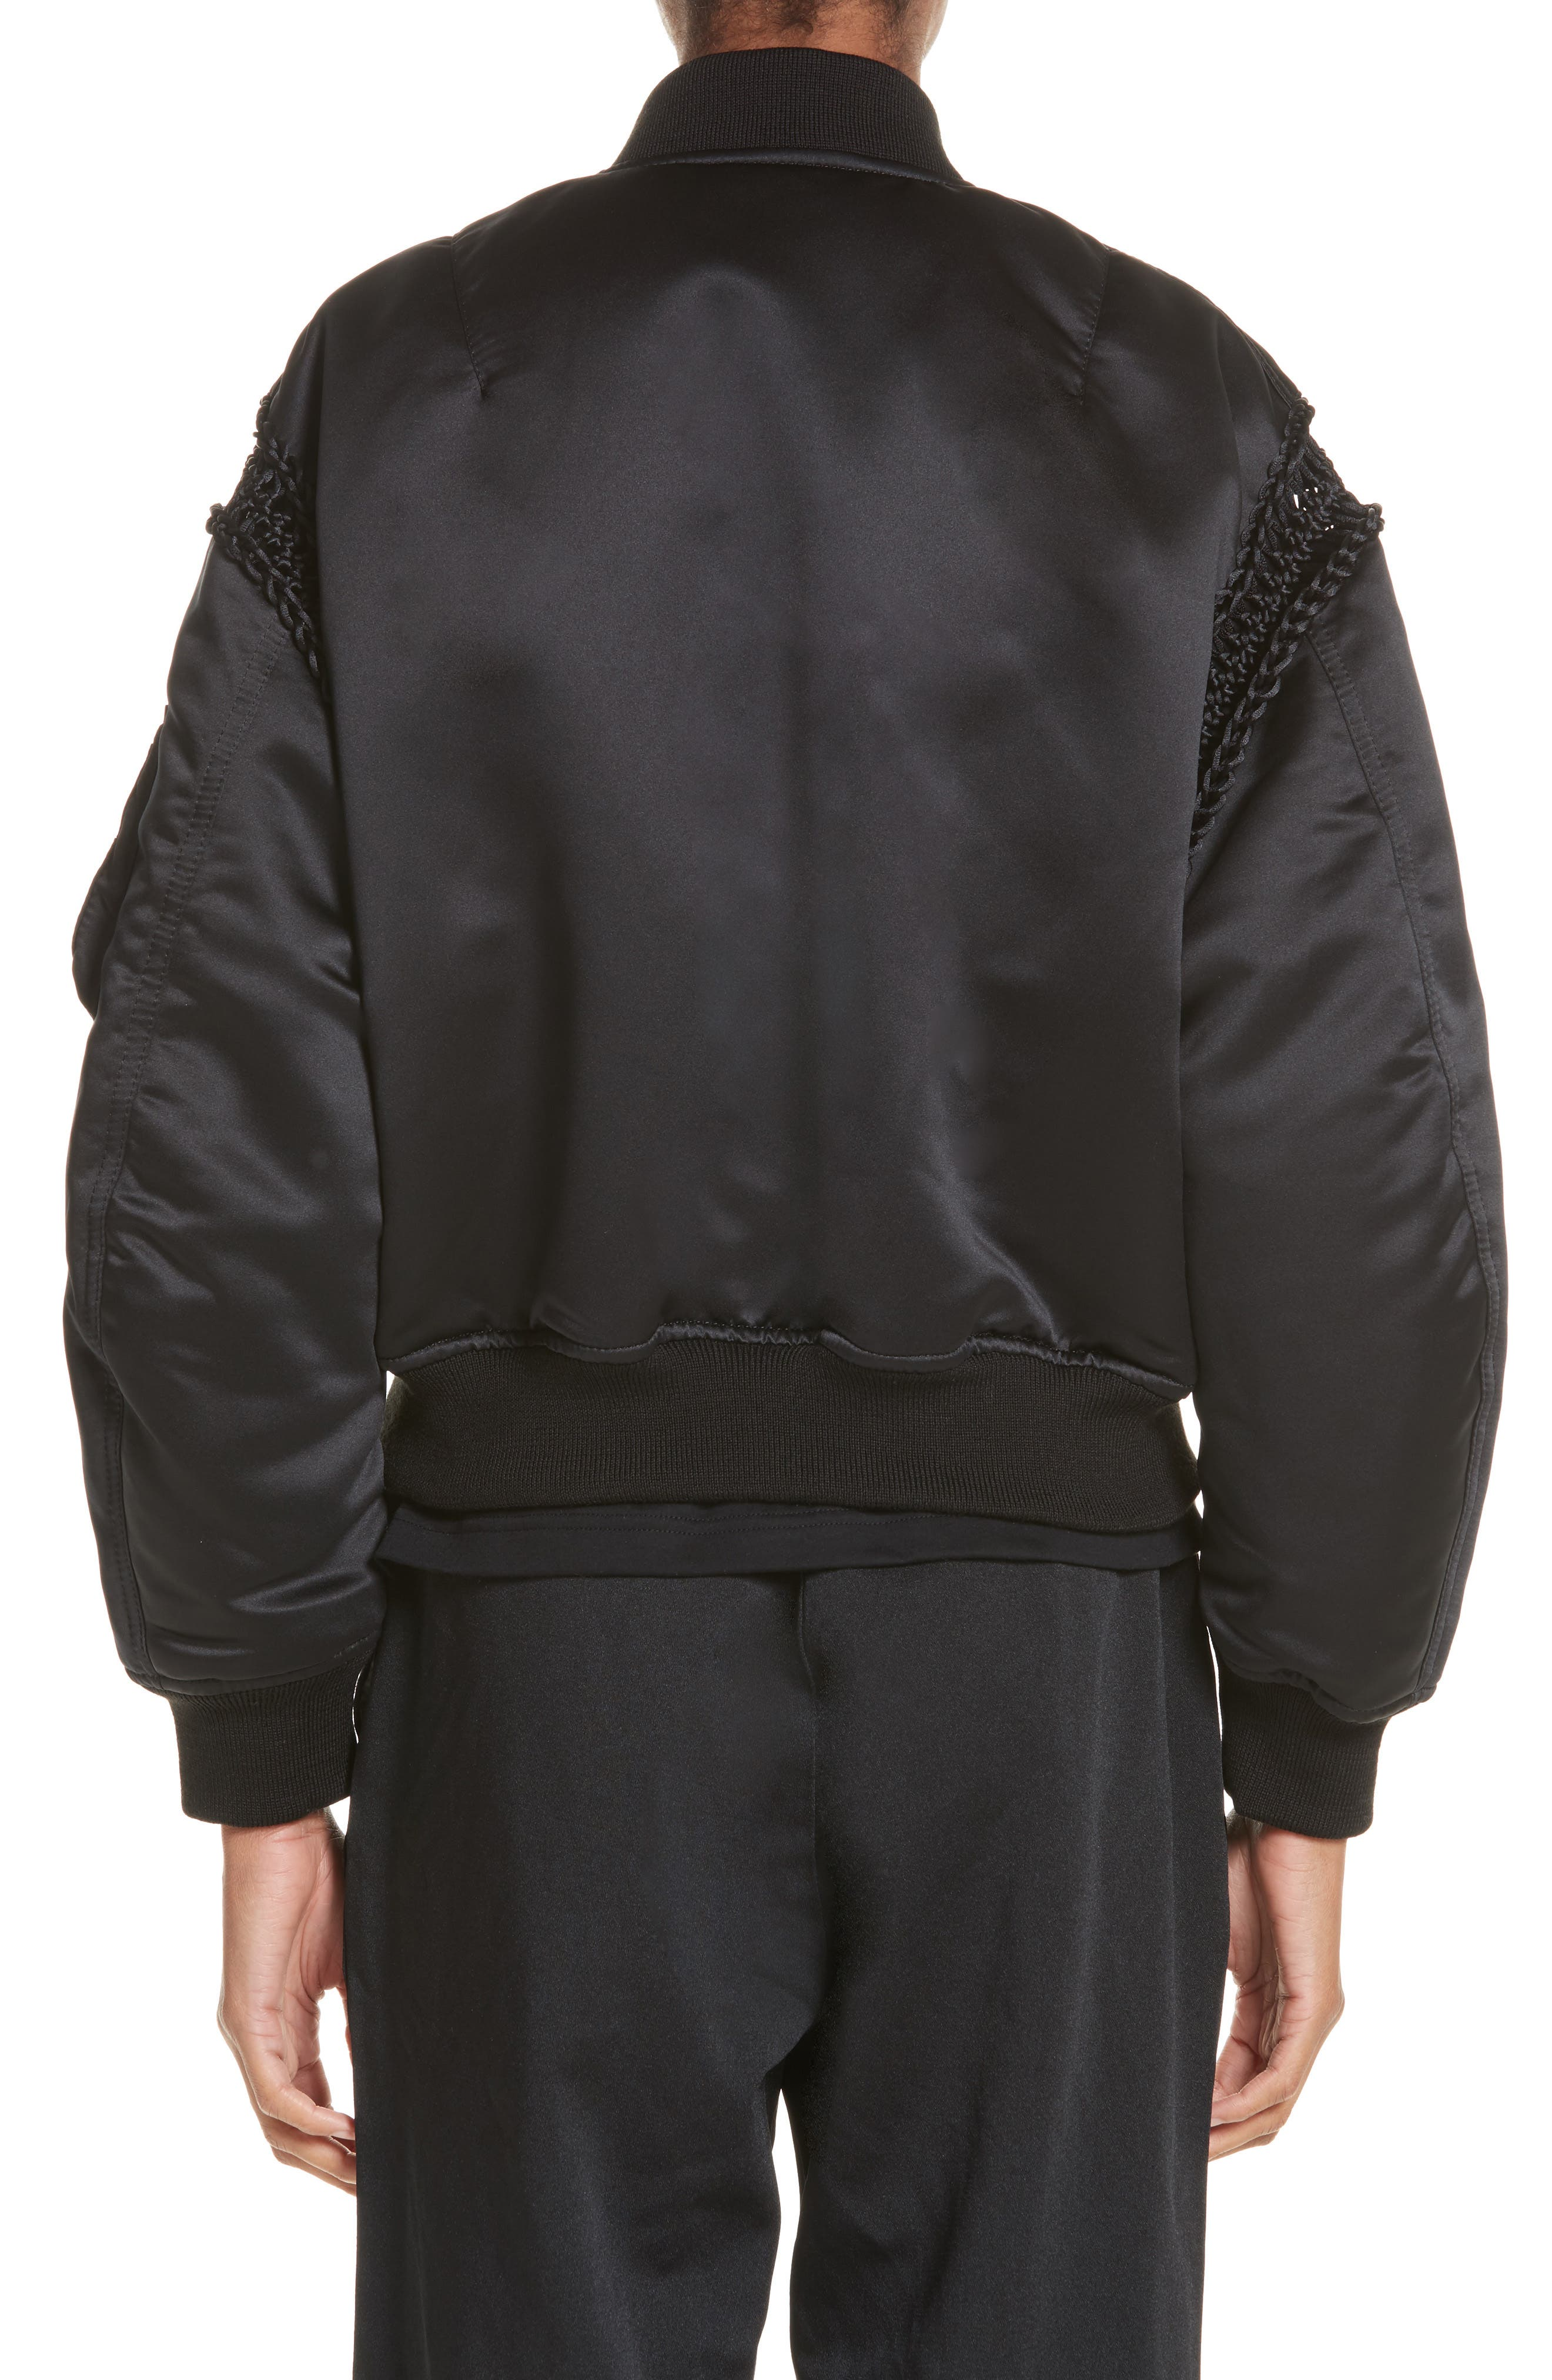 Alternate Image 2  - noir kei ninomiya Macramé Trim Satin Bomber Jacket